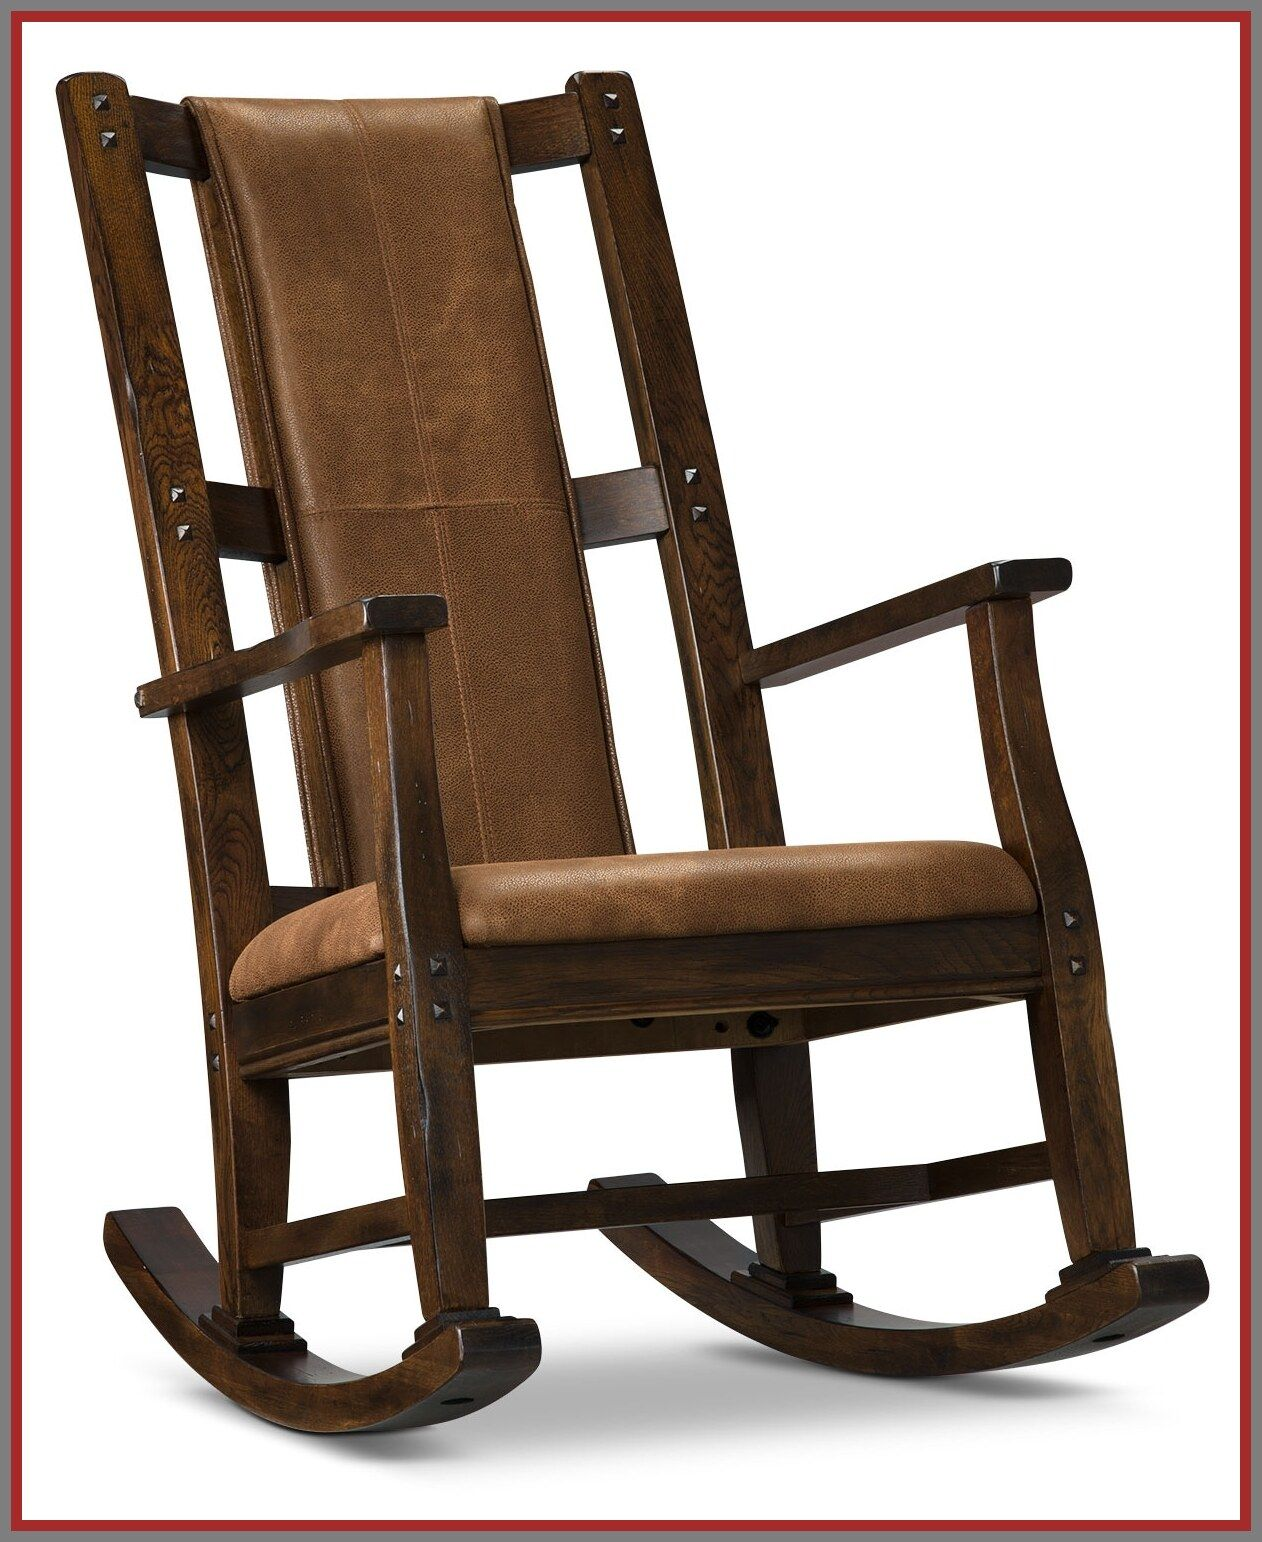 36 Reference Of Rocking Chair Furniture Melbourne Rocking Chair Furniture Chair Basement Remodeling